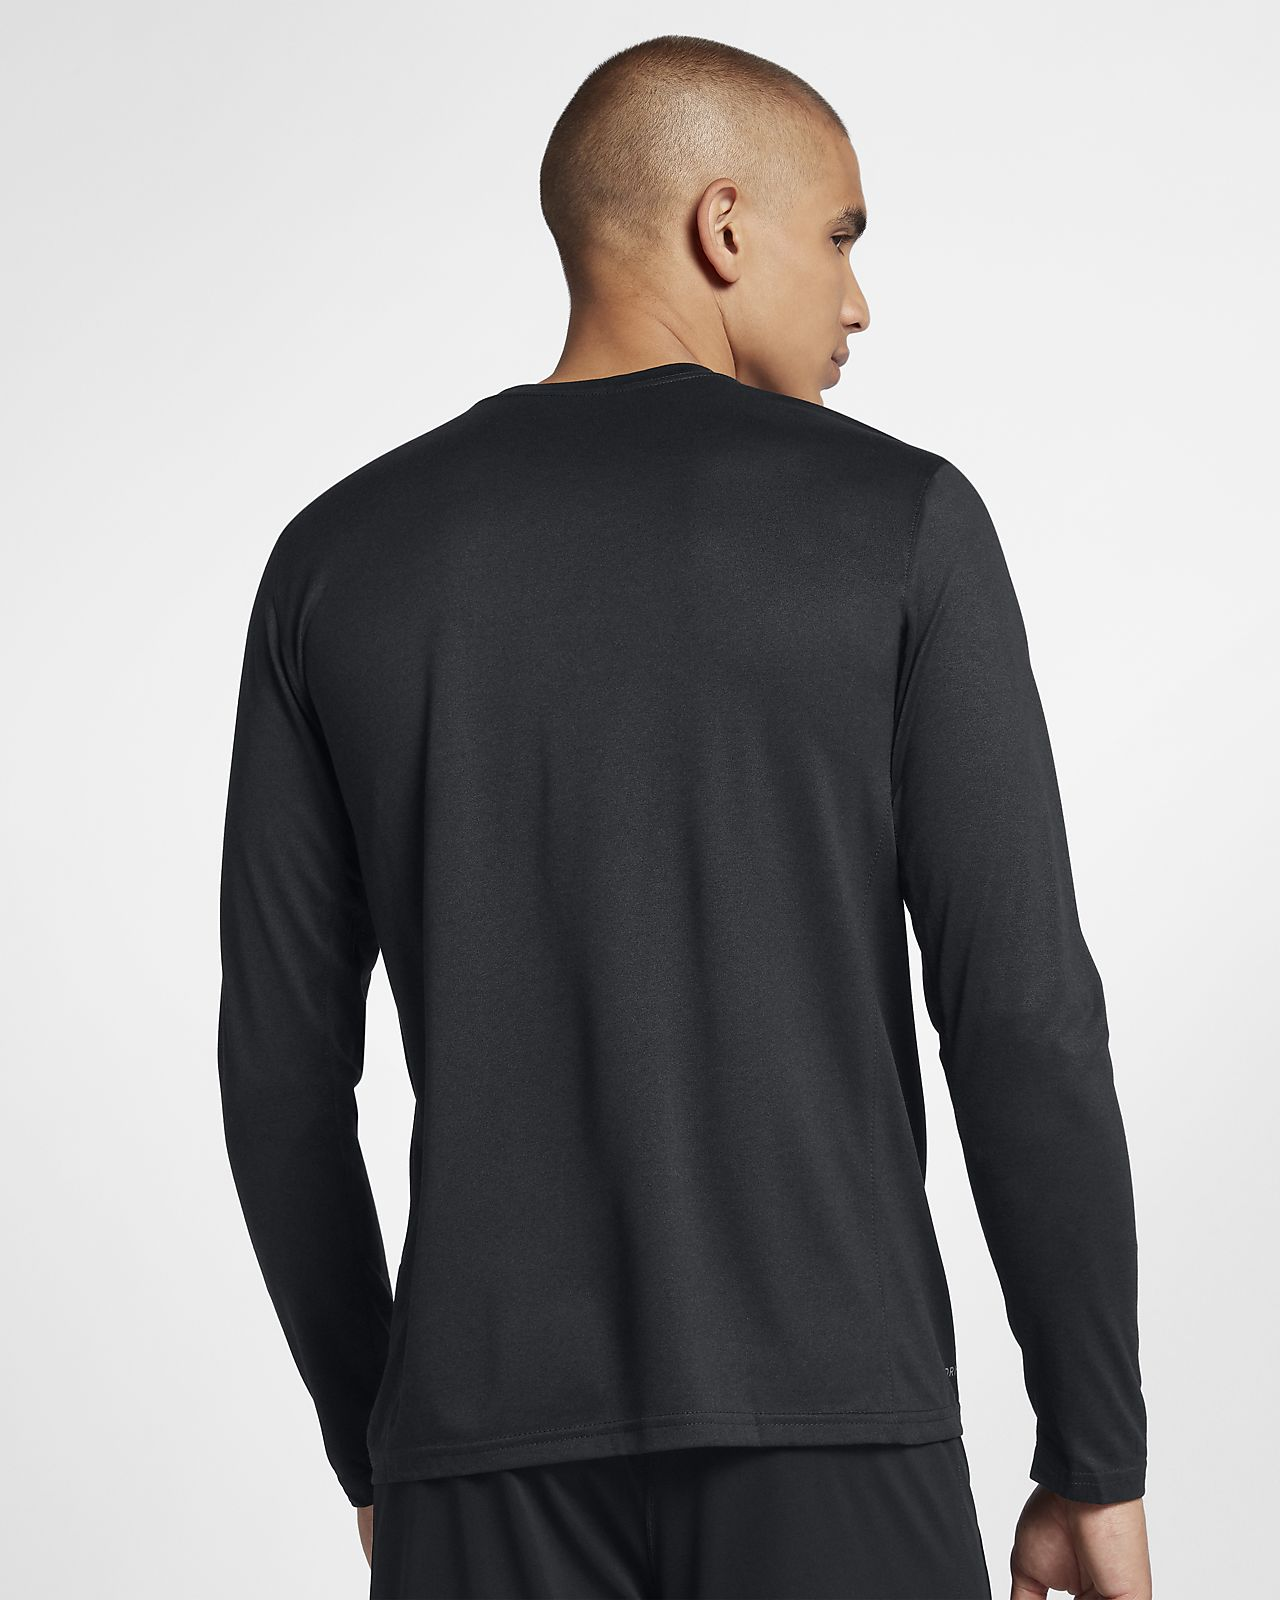 factory outlets where can i buy discount Nike Dri-FIT Legend 2.0 Men's Long-Sleeve Training Top